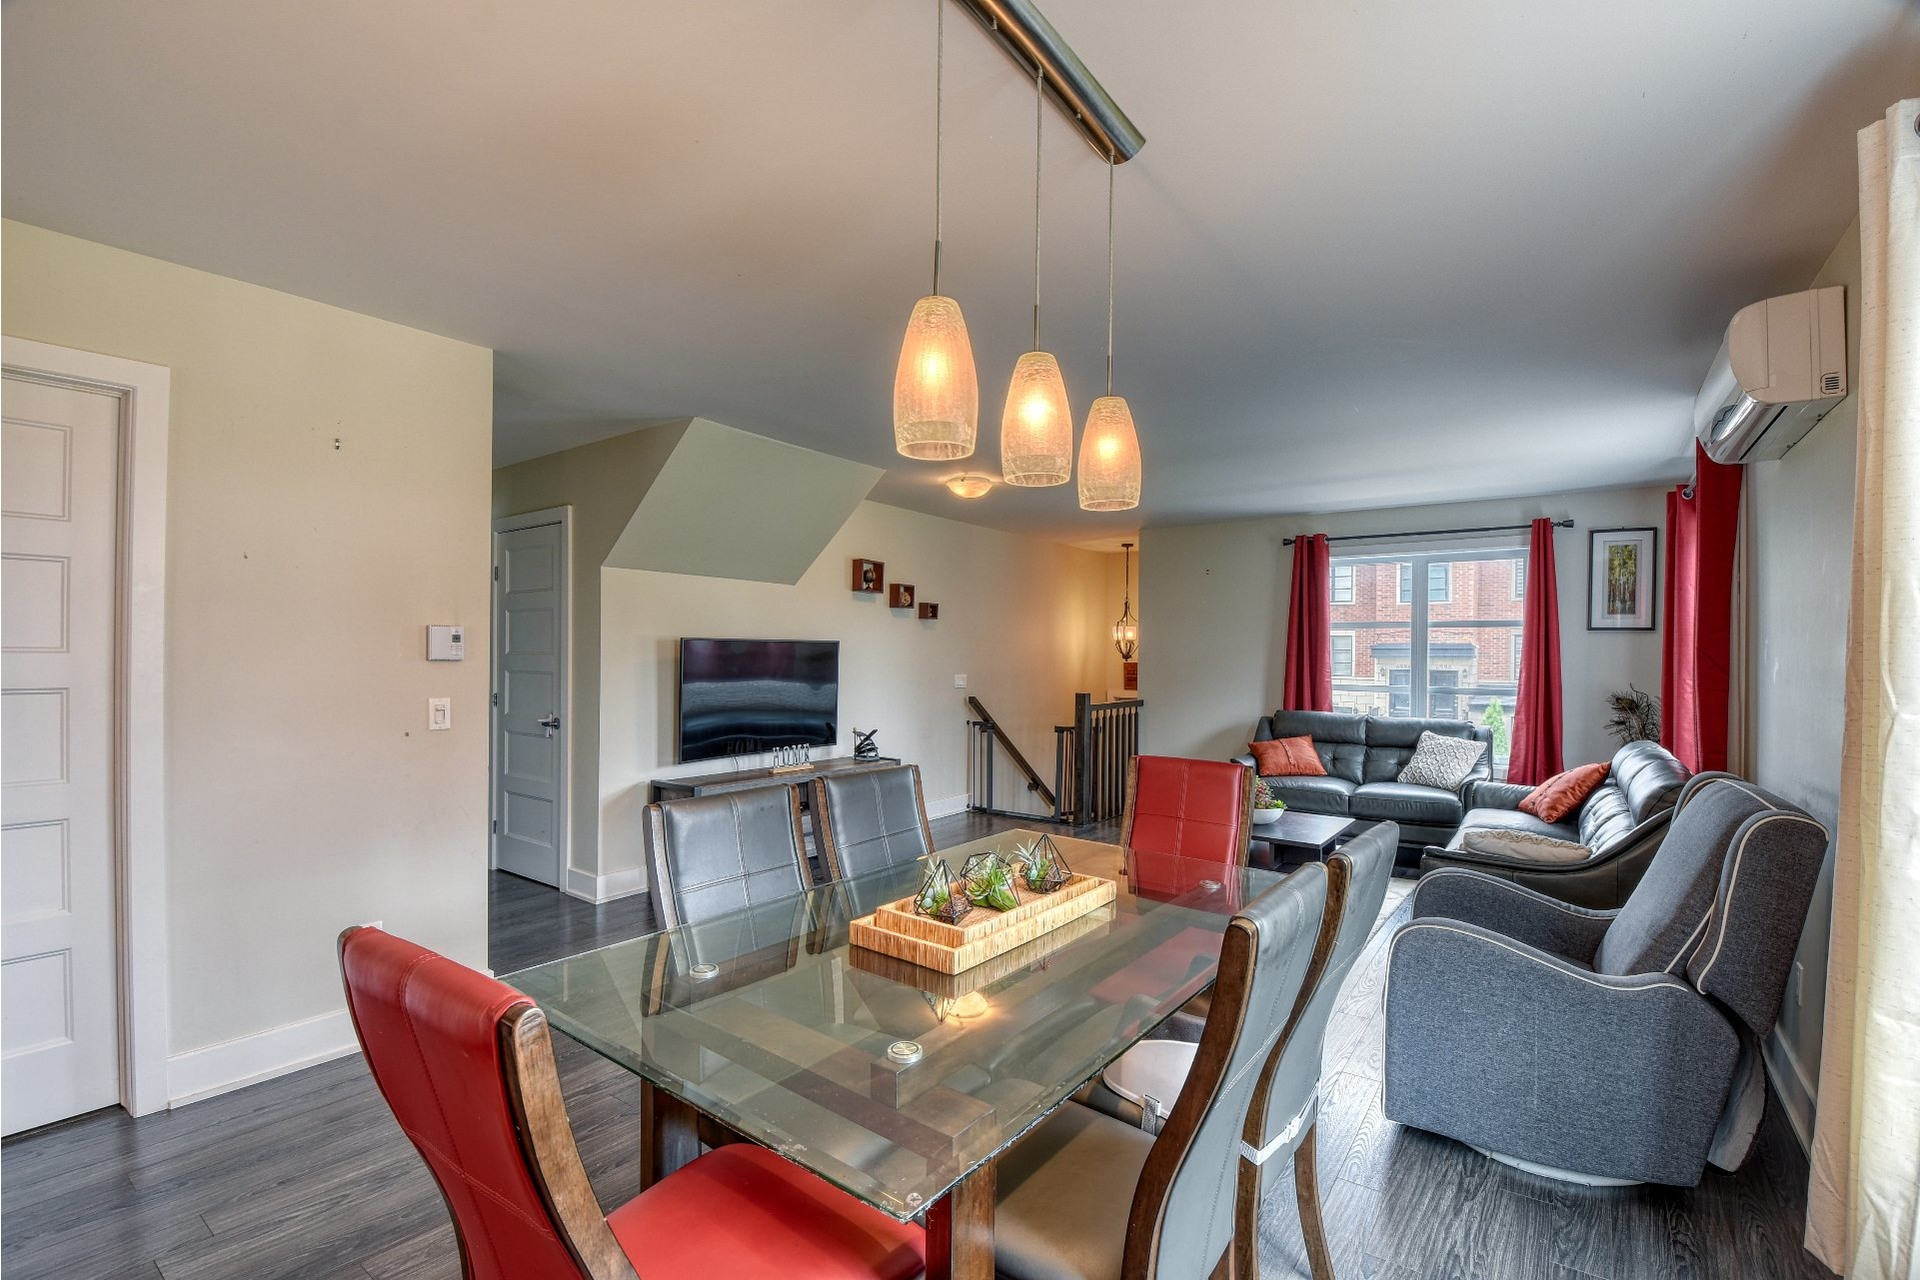 image 6 - Apartment For sale Duvernay Laval  - 6 rooms